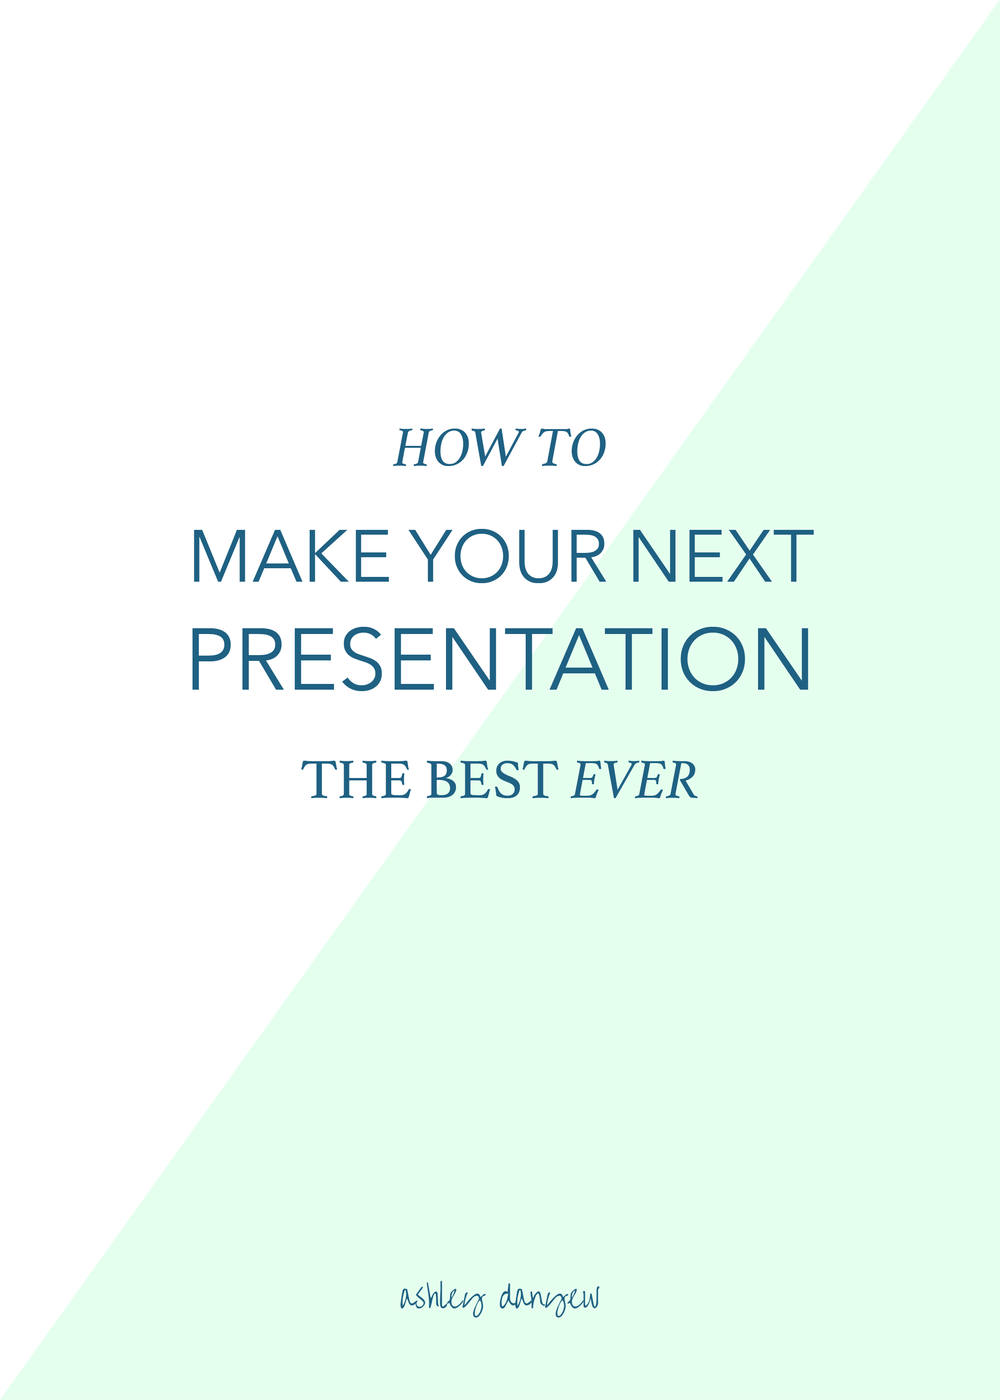 How-to-Make-Your-Next-Presentation-the-Best-Ever-01.png